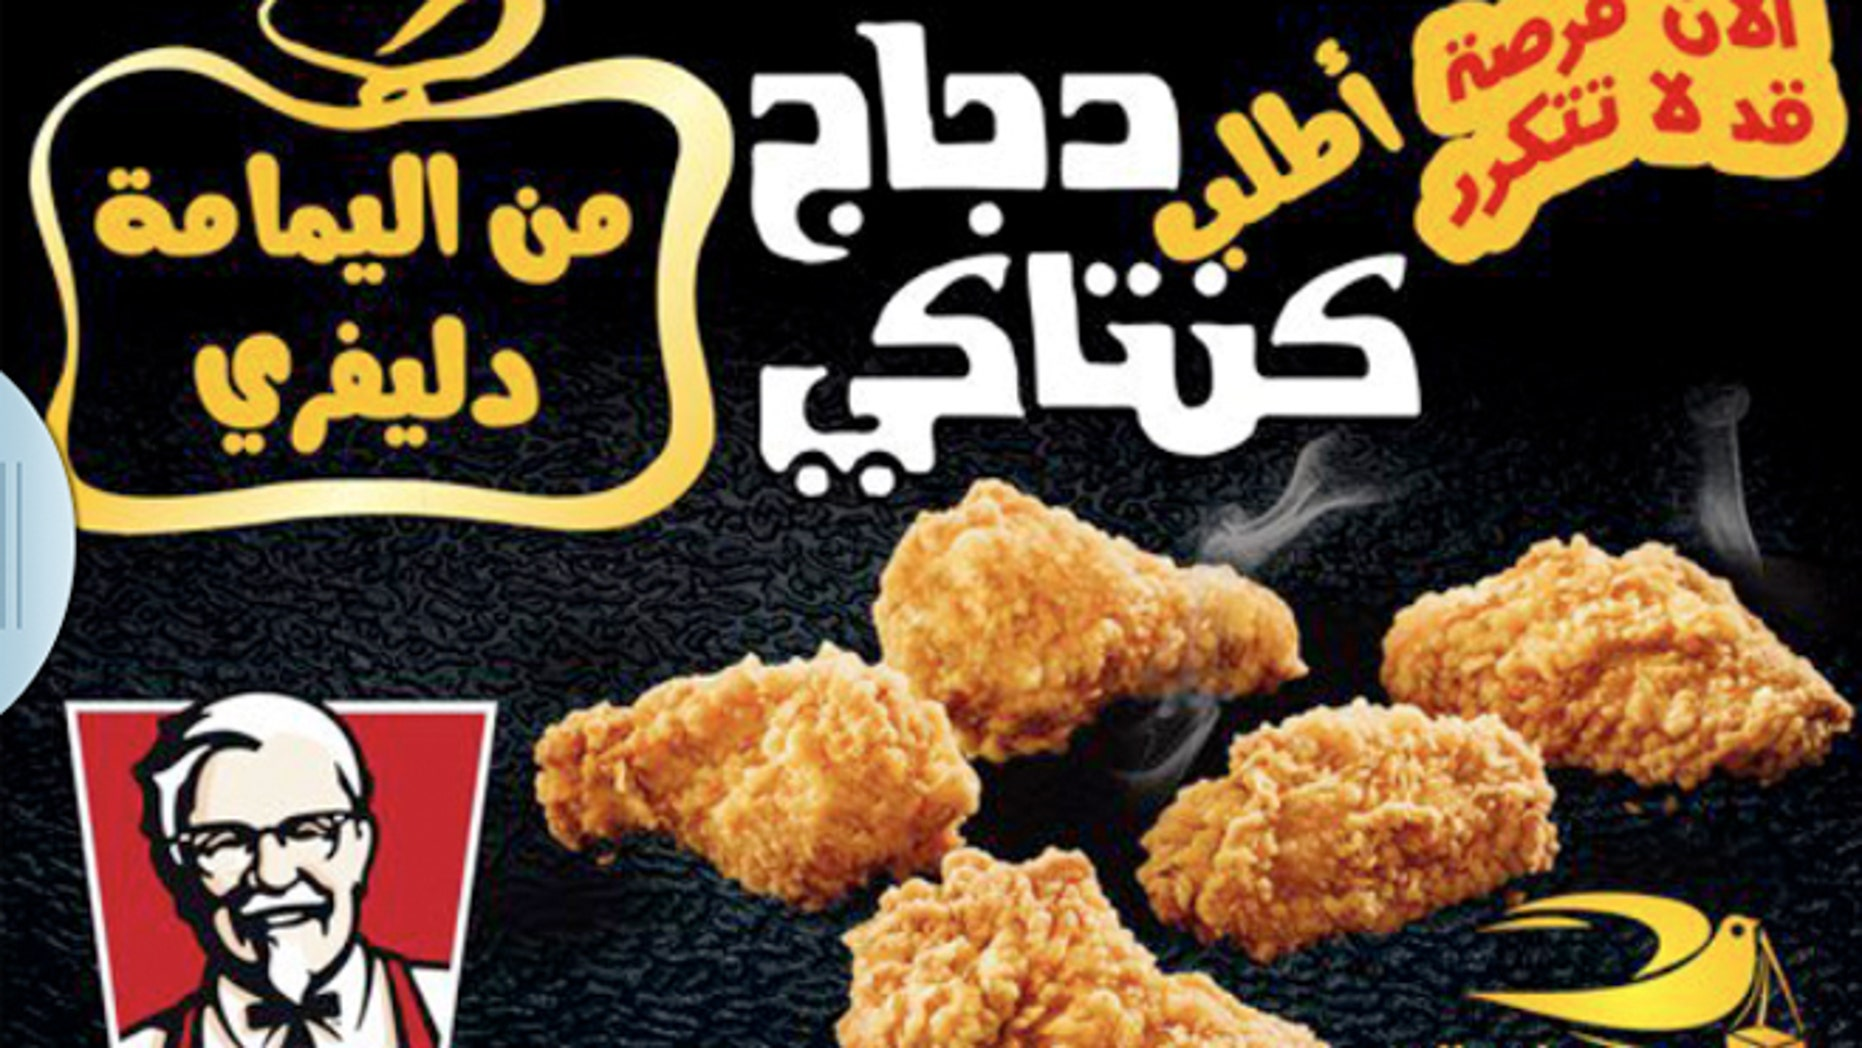 Al-Yamama advertises its Kentucky Fried Chicken delivery service on Facebook.